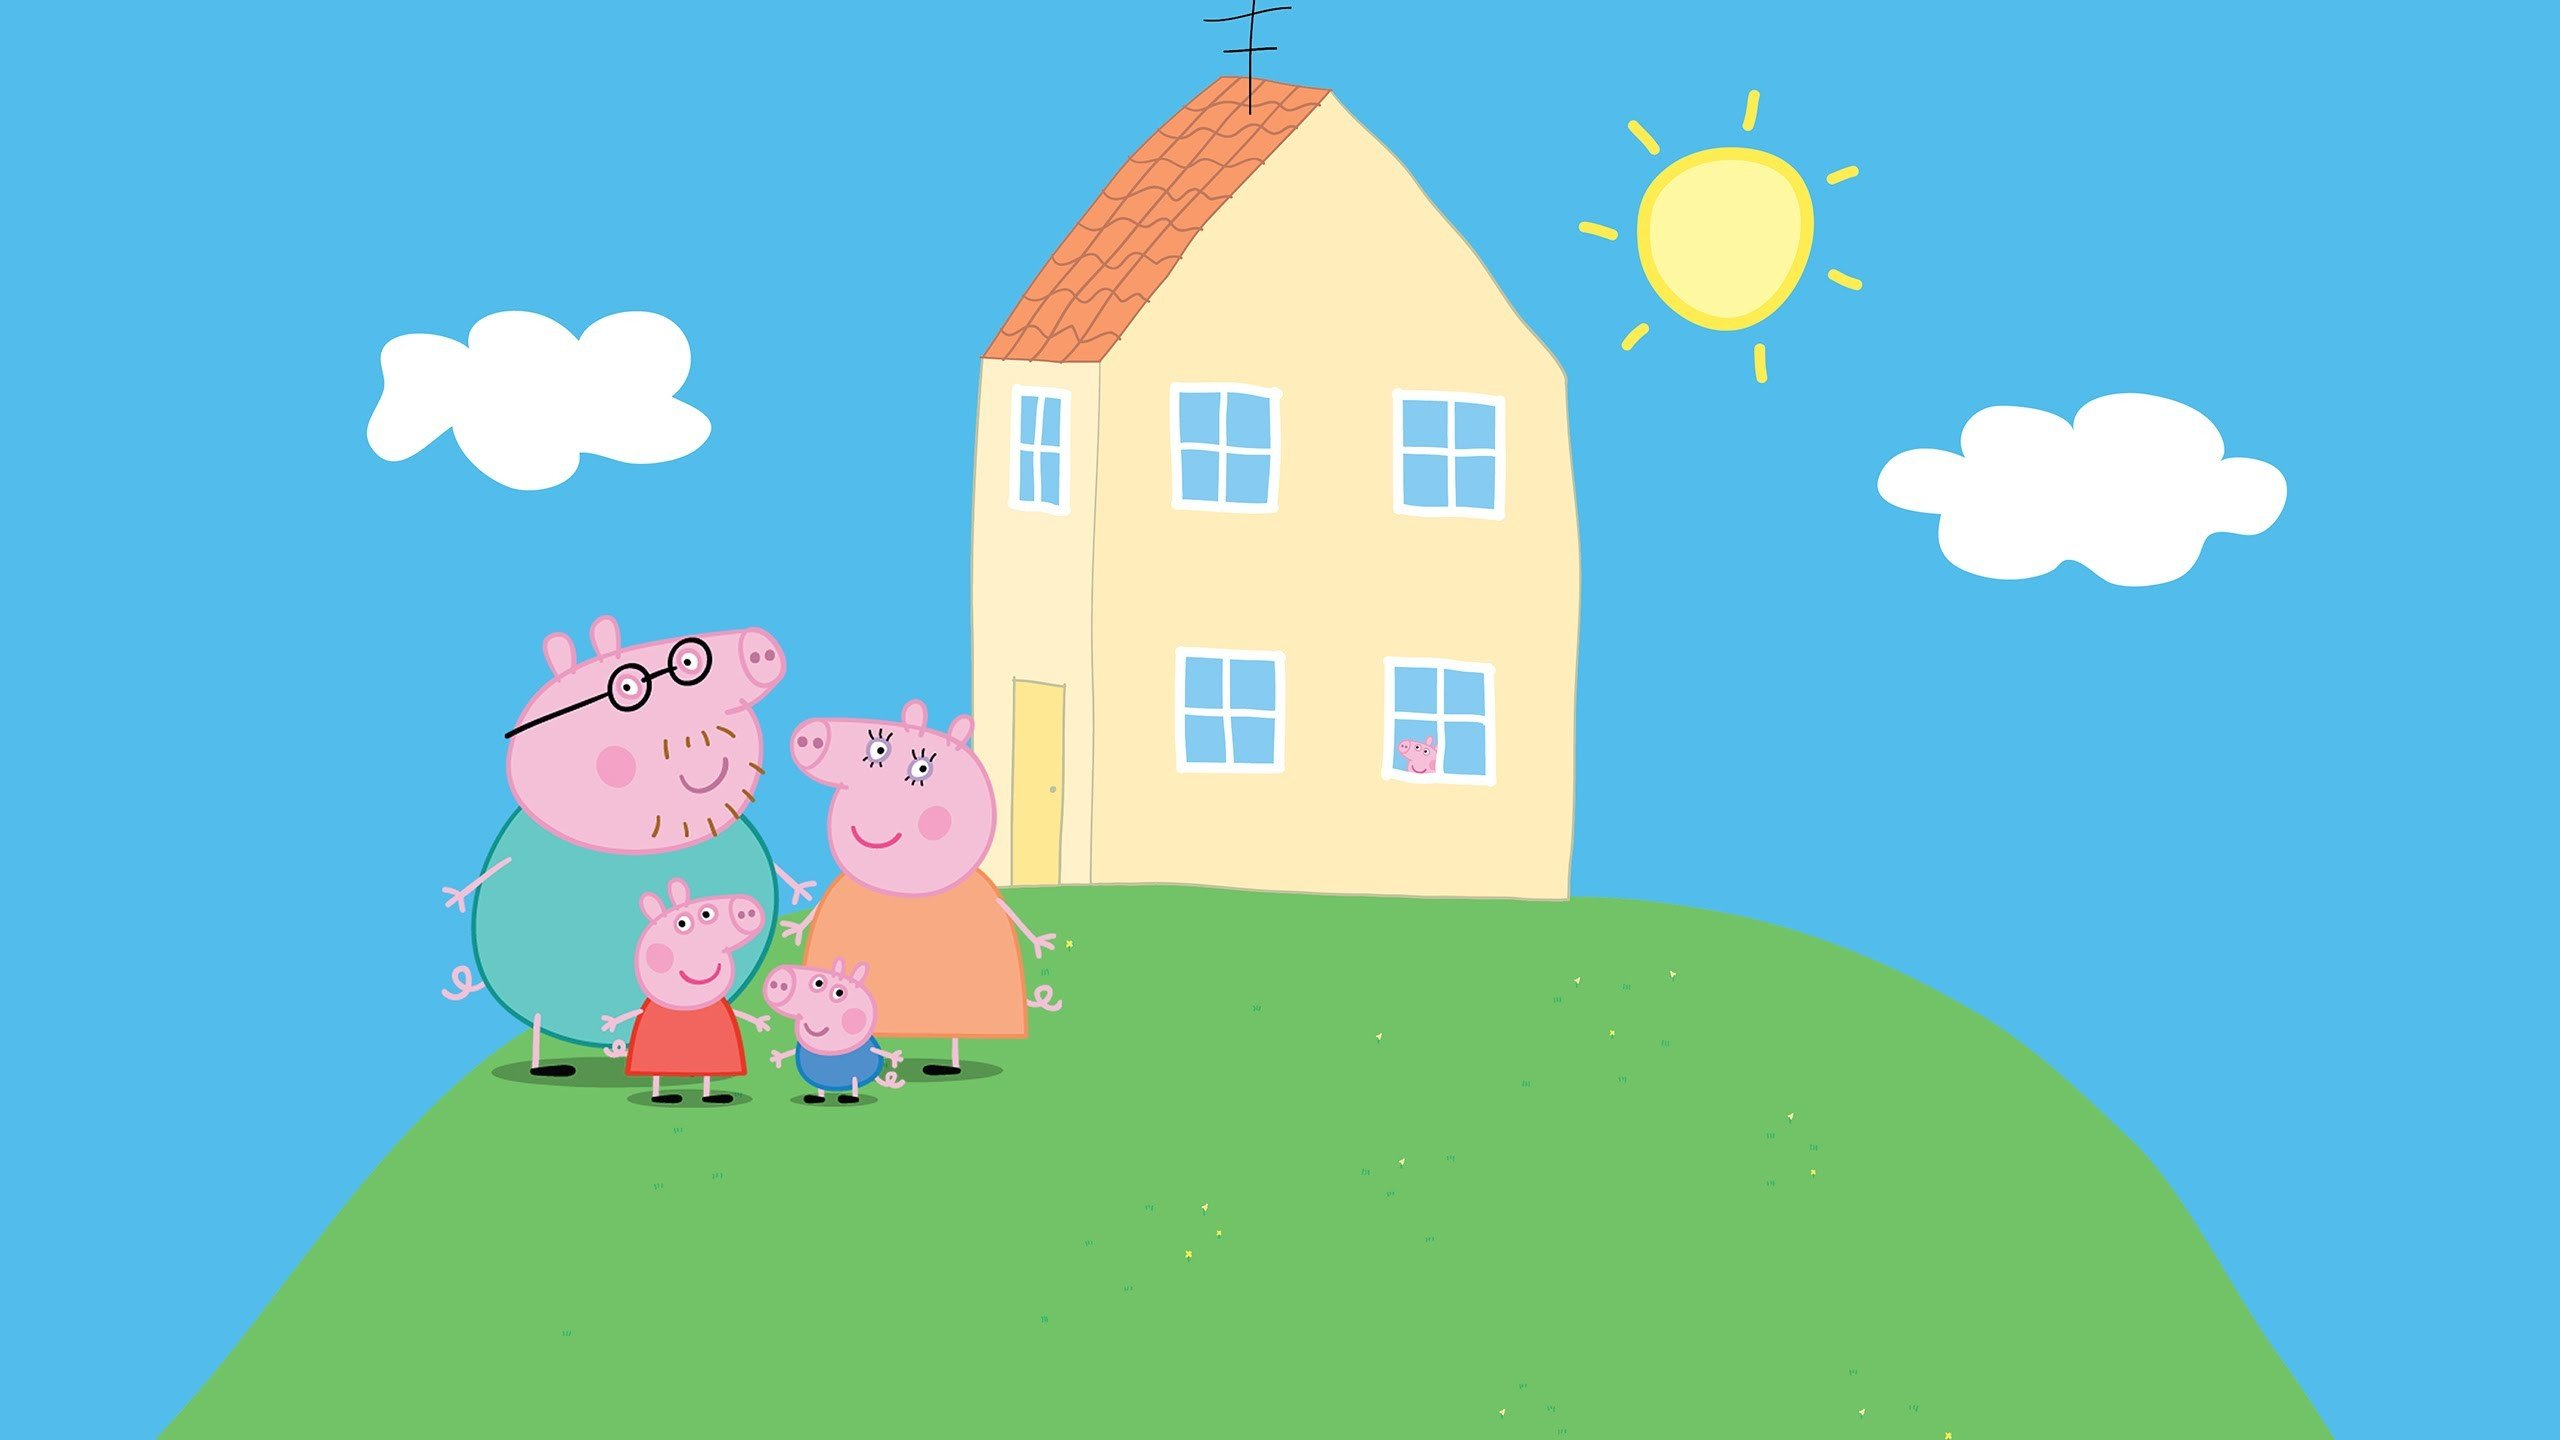 Peppa Pig Wallpaper   Peppa Pig Family And House 3105447   HD 2560x1440